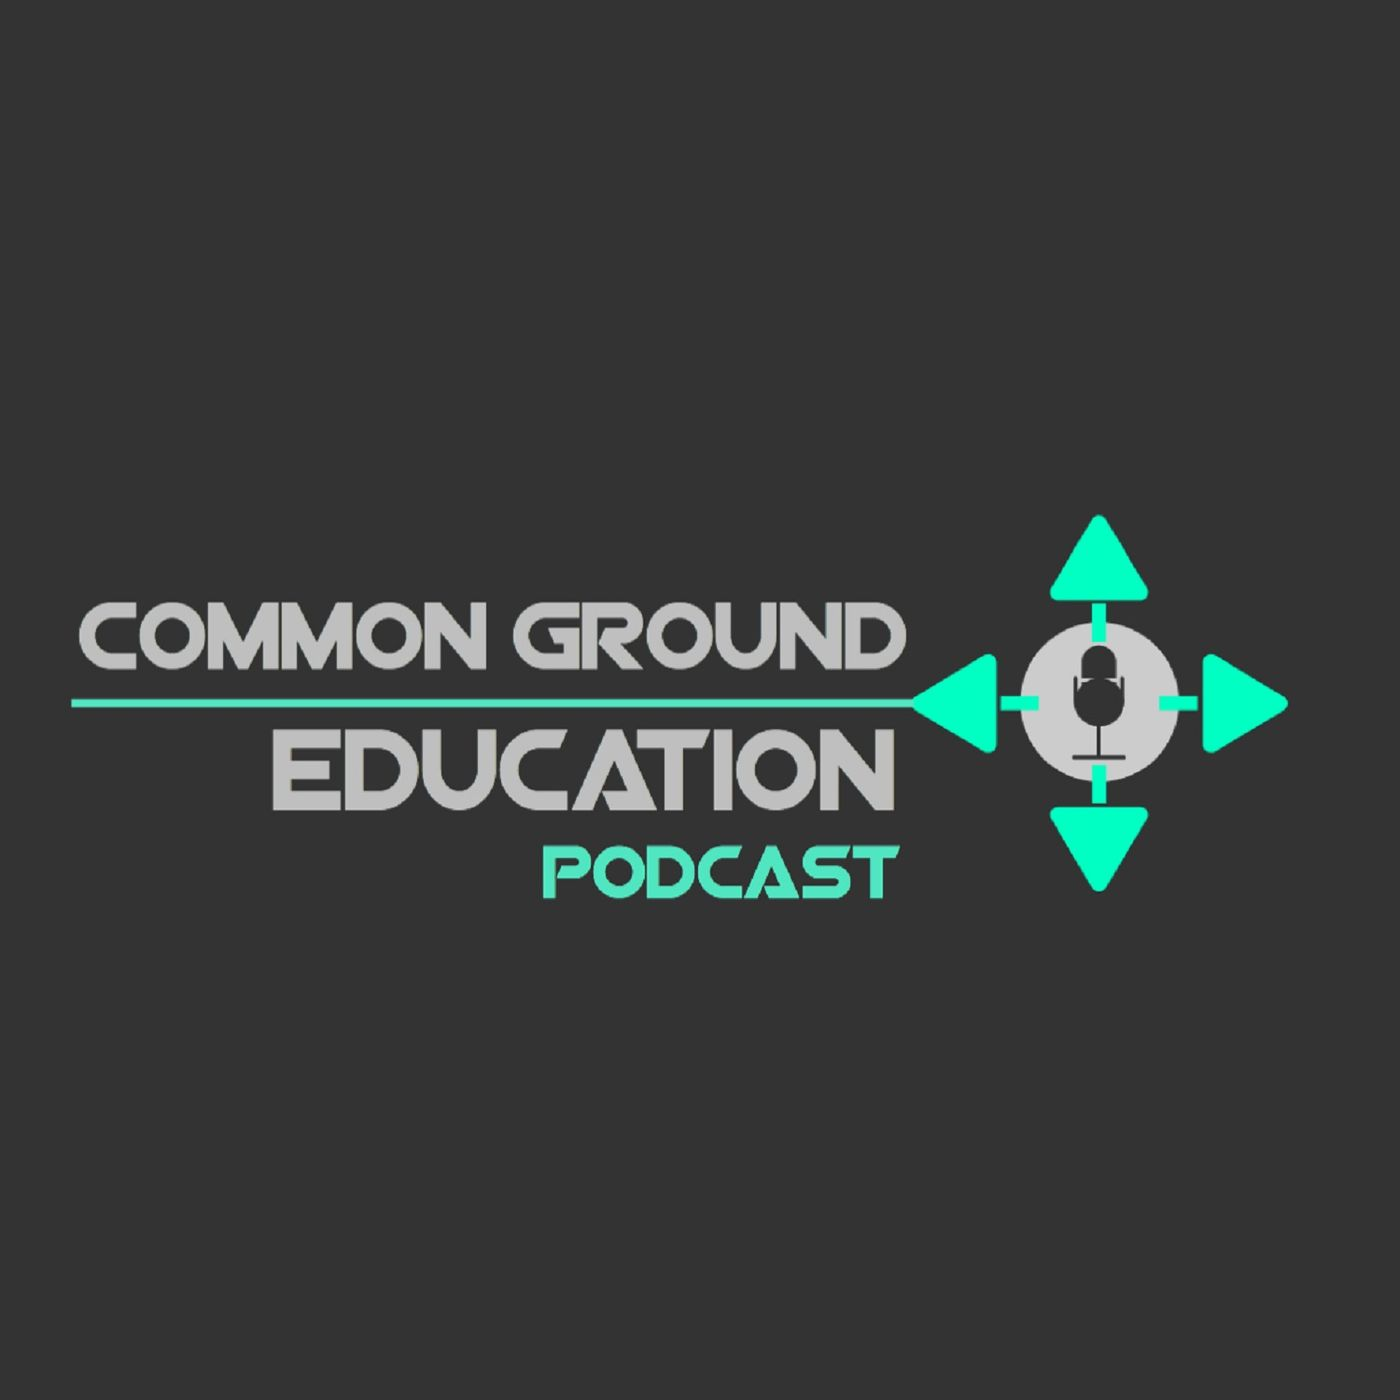 Common Ground Education Podcast